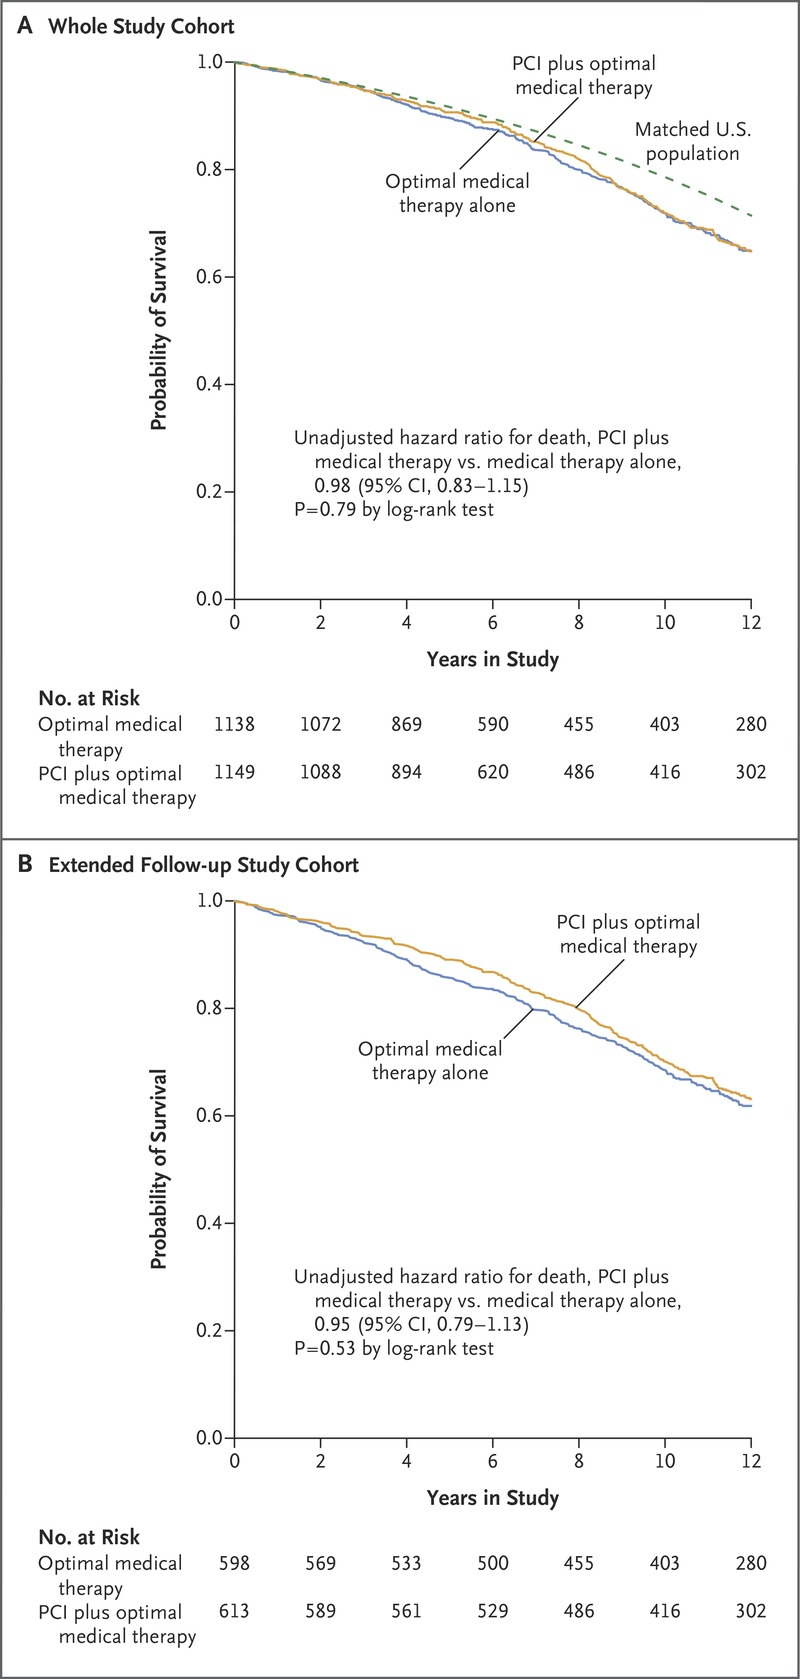 Effect of PCI on Long-Term Survival in Patients with Stable Ischemic